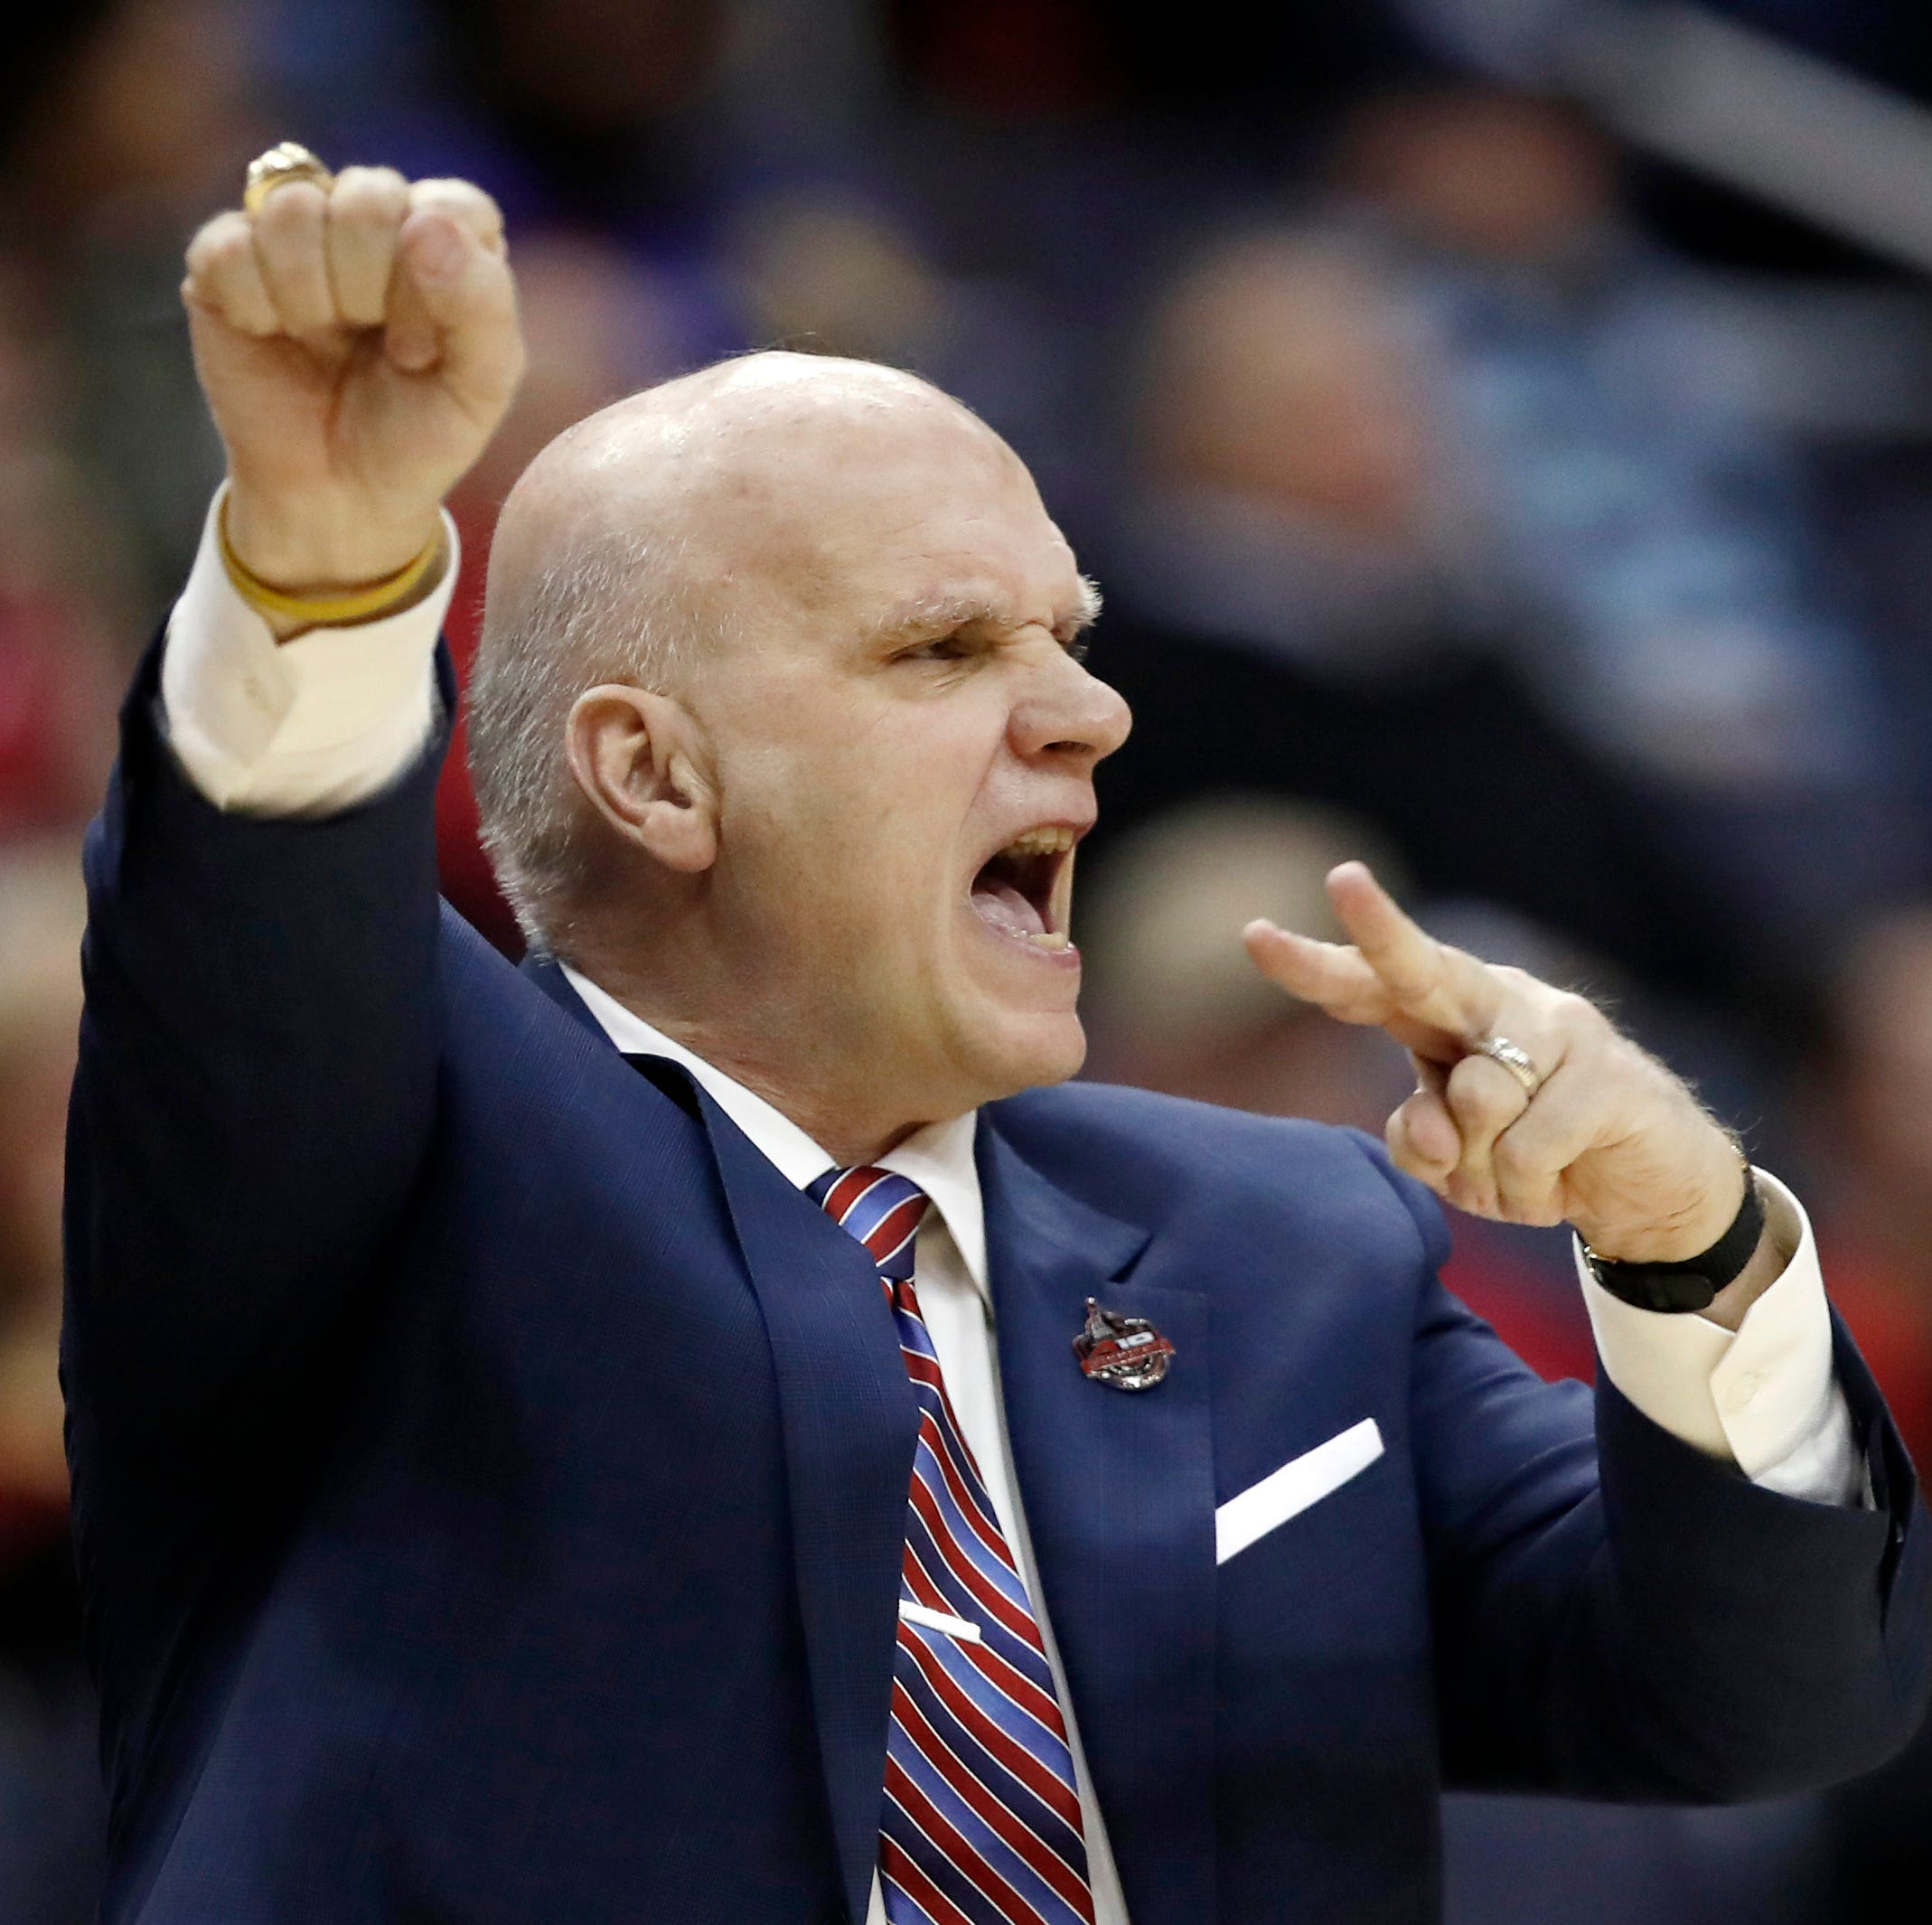 Saint Joseph's fires coach Phil Martelli after 24 years